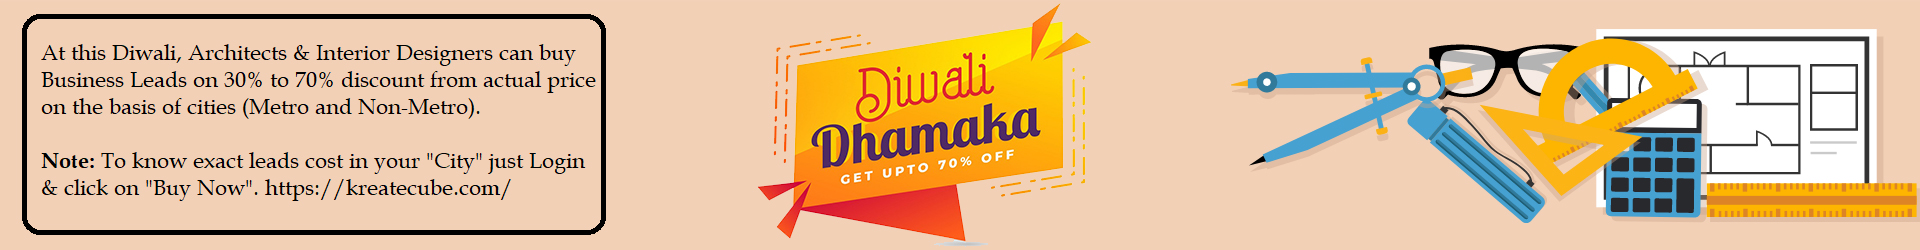 Diwali Offer in Business Leads